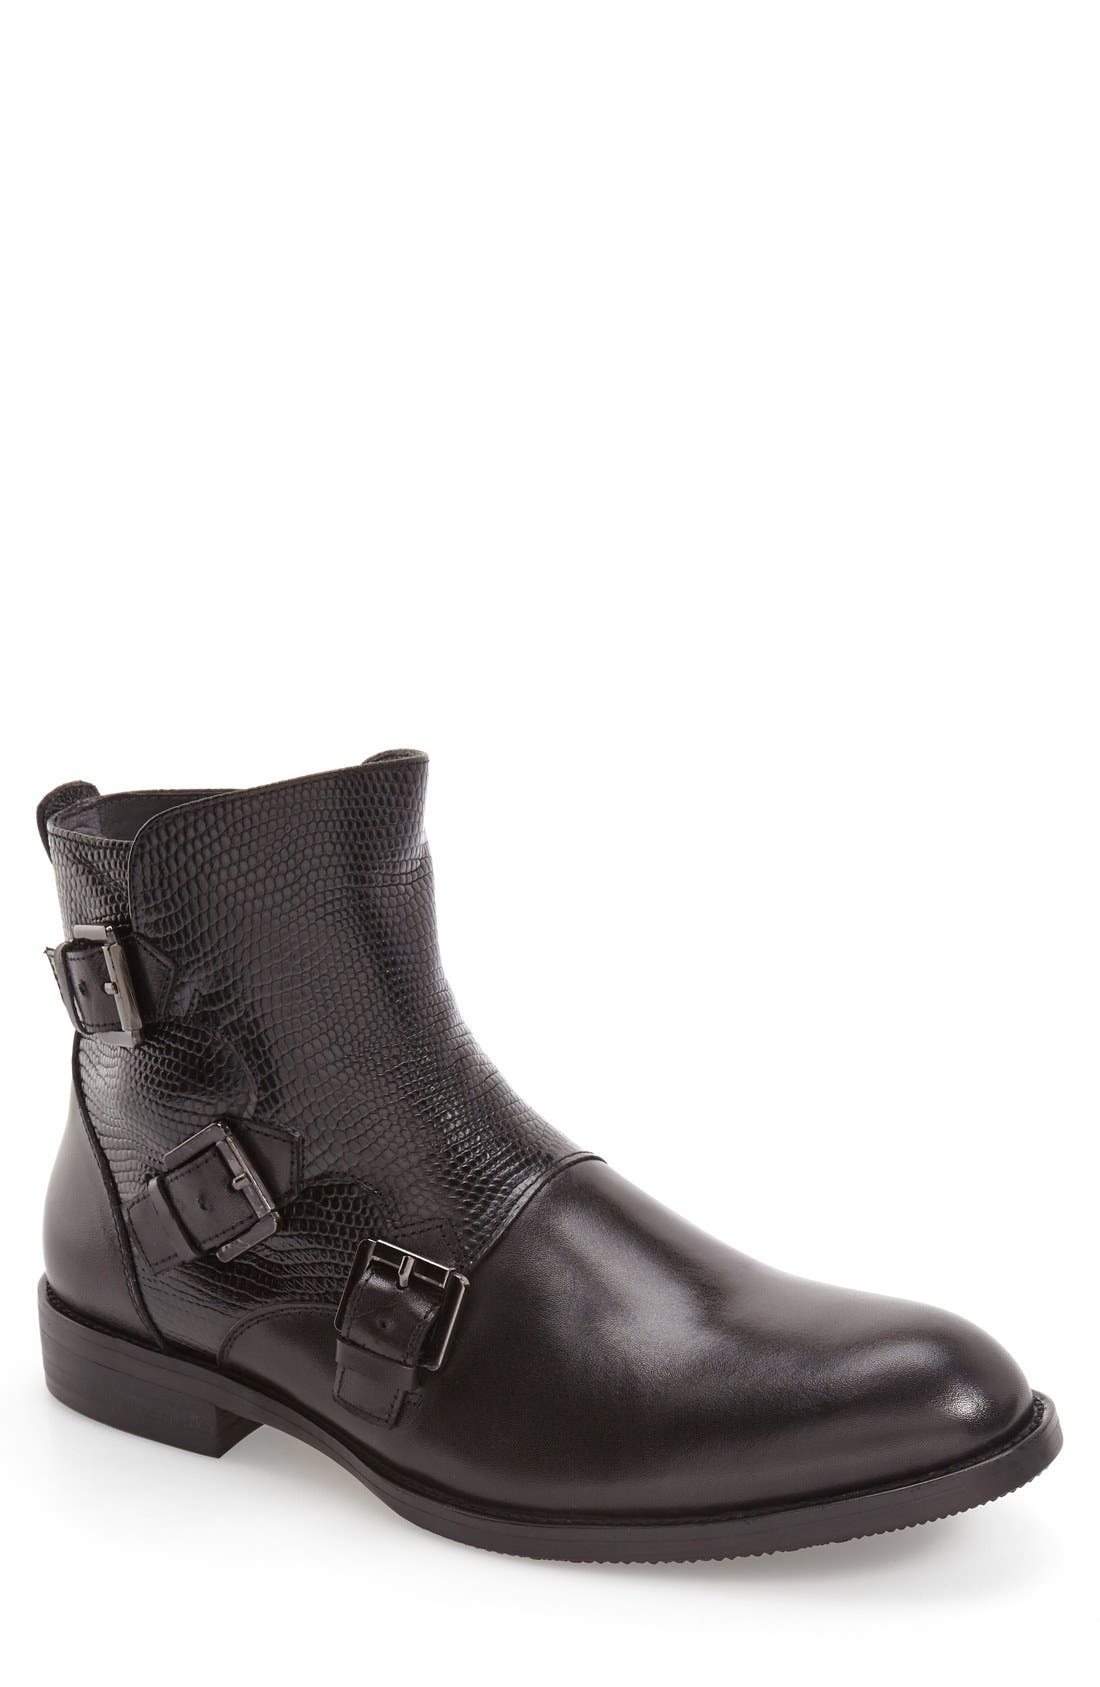 Main Image - Zanzara 'Messina' Zip Boot (Men)